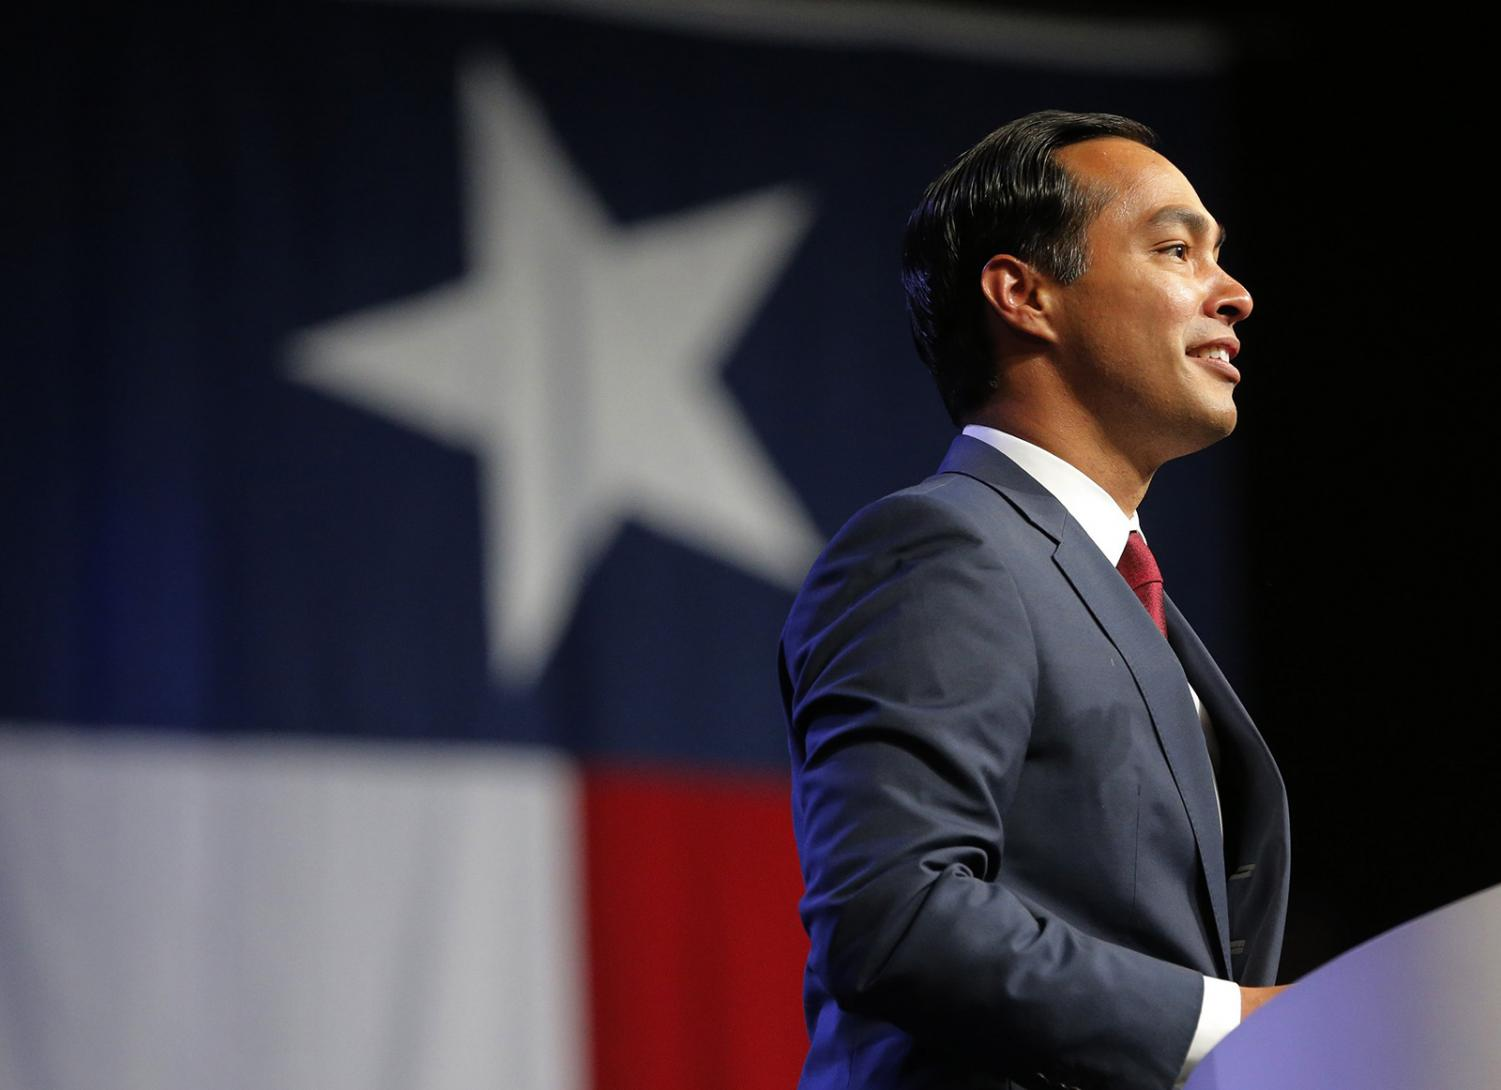 Julian Castro, former Secretary of Housing and Urban Development, speaks at the Texas Democratic Convention, in Fort Worth, Texas, on June 22, 2018.